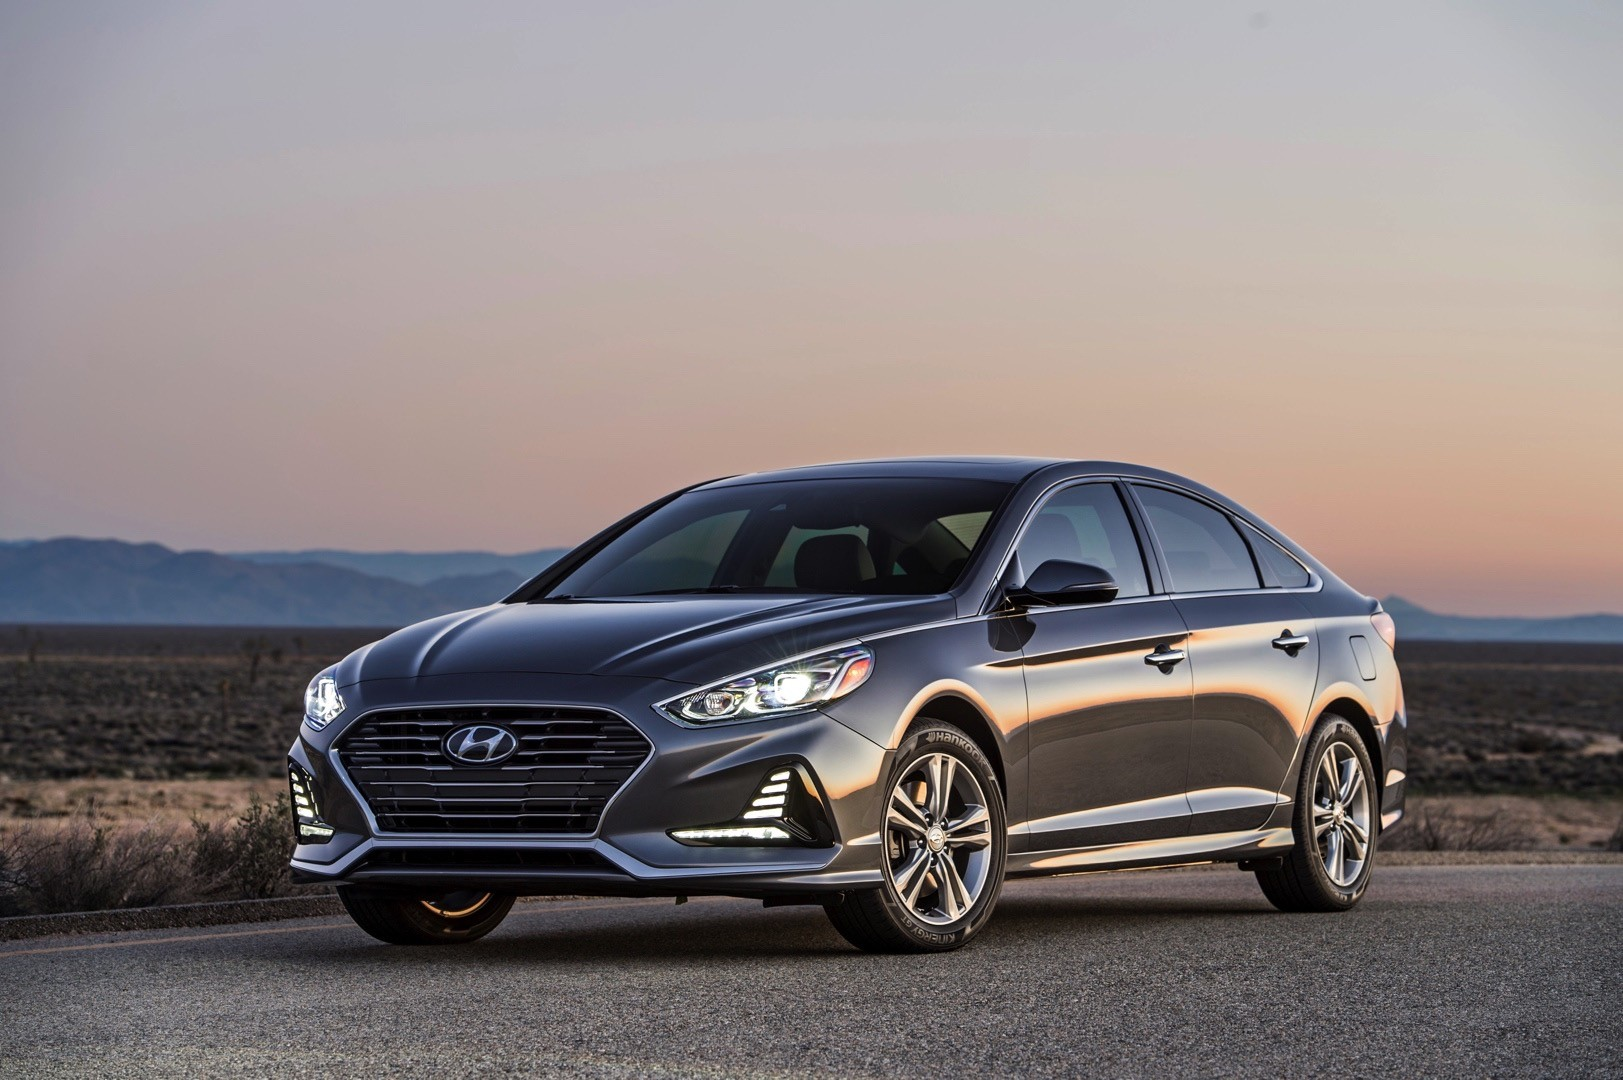 2018 hyundai sonata debuts with refreshed styling new features autoevolution. Black Bedroom Furniture Sets. Home Design Ideas